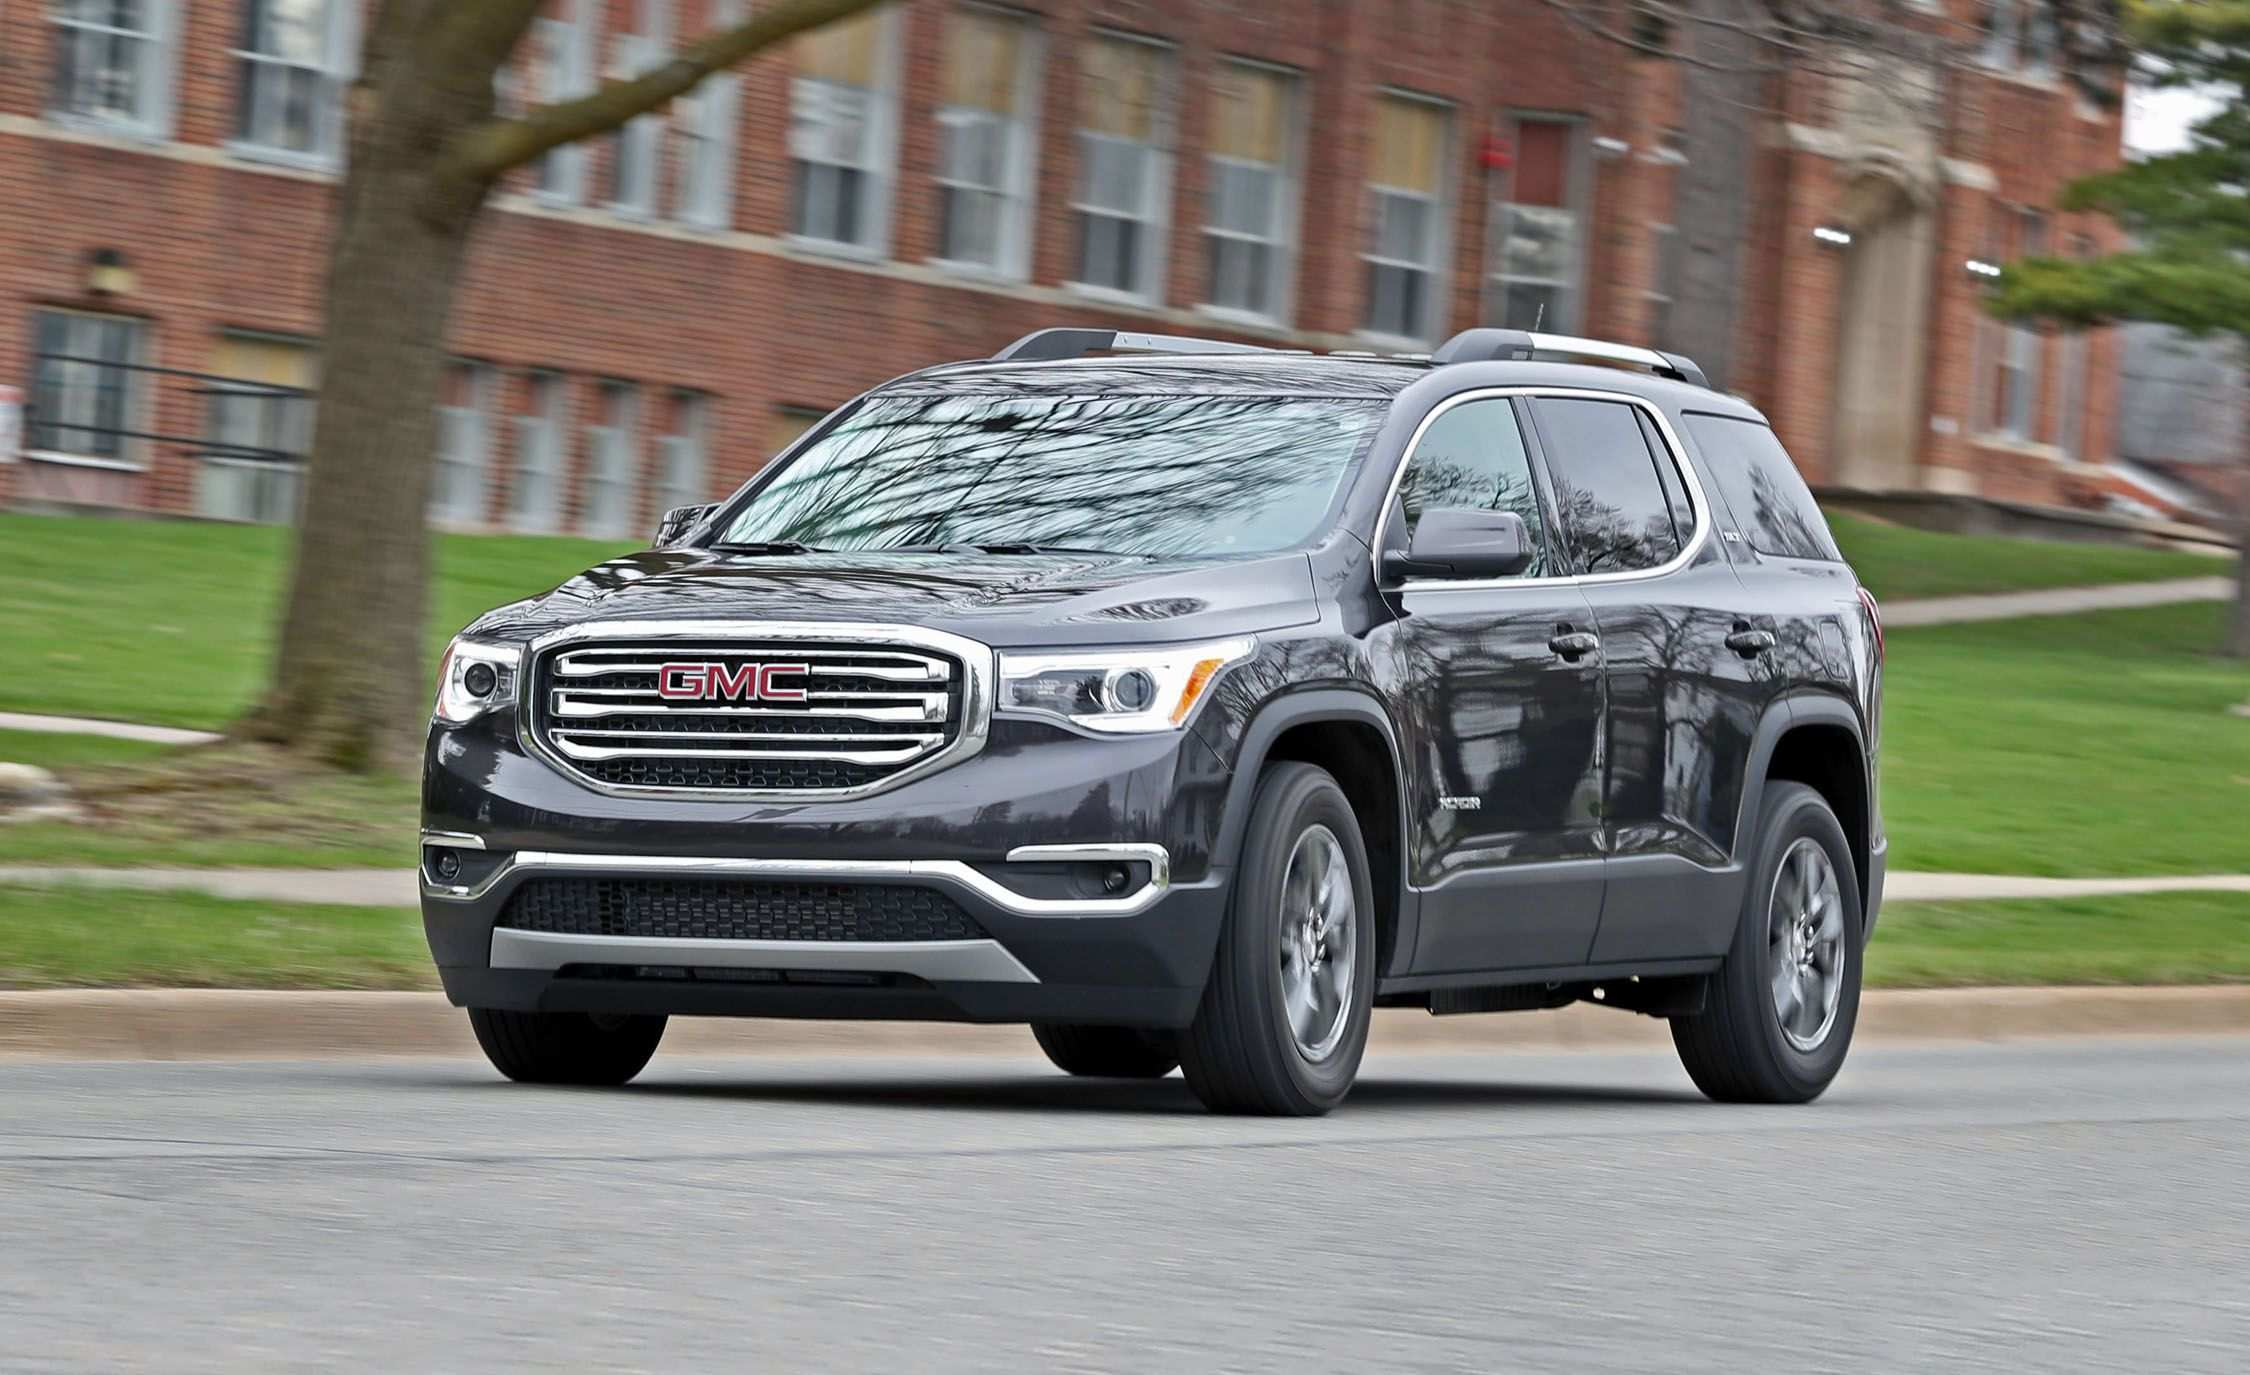 65 Gallery of 2019 Gmc Acadia 9 Speed Transmission Configurations with 2019 Gmc Acadia 9 Speed Transmission